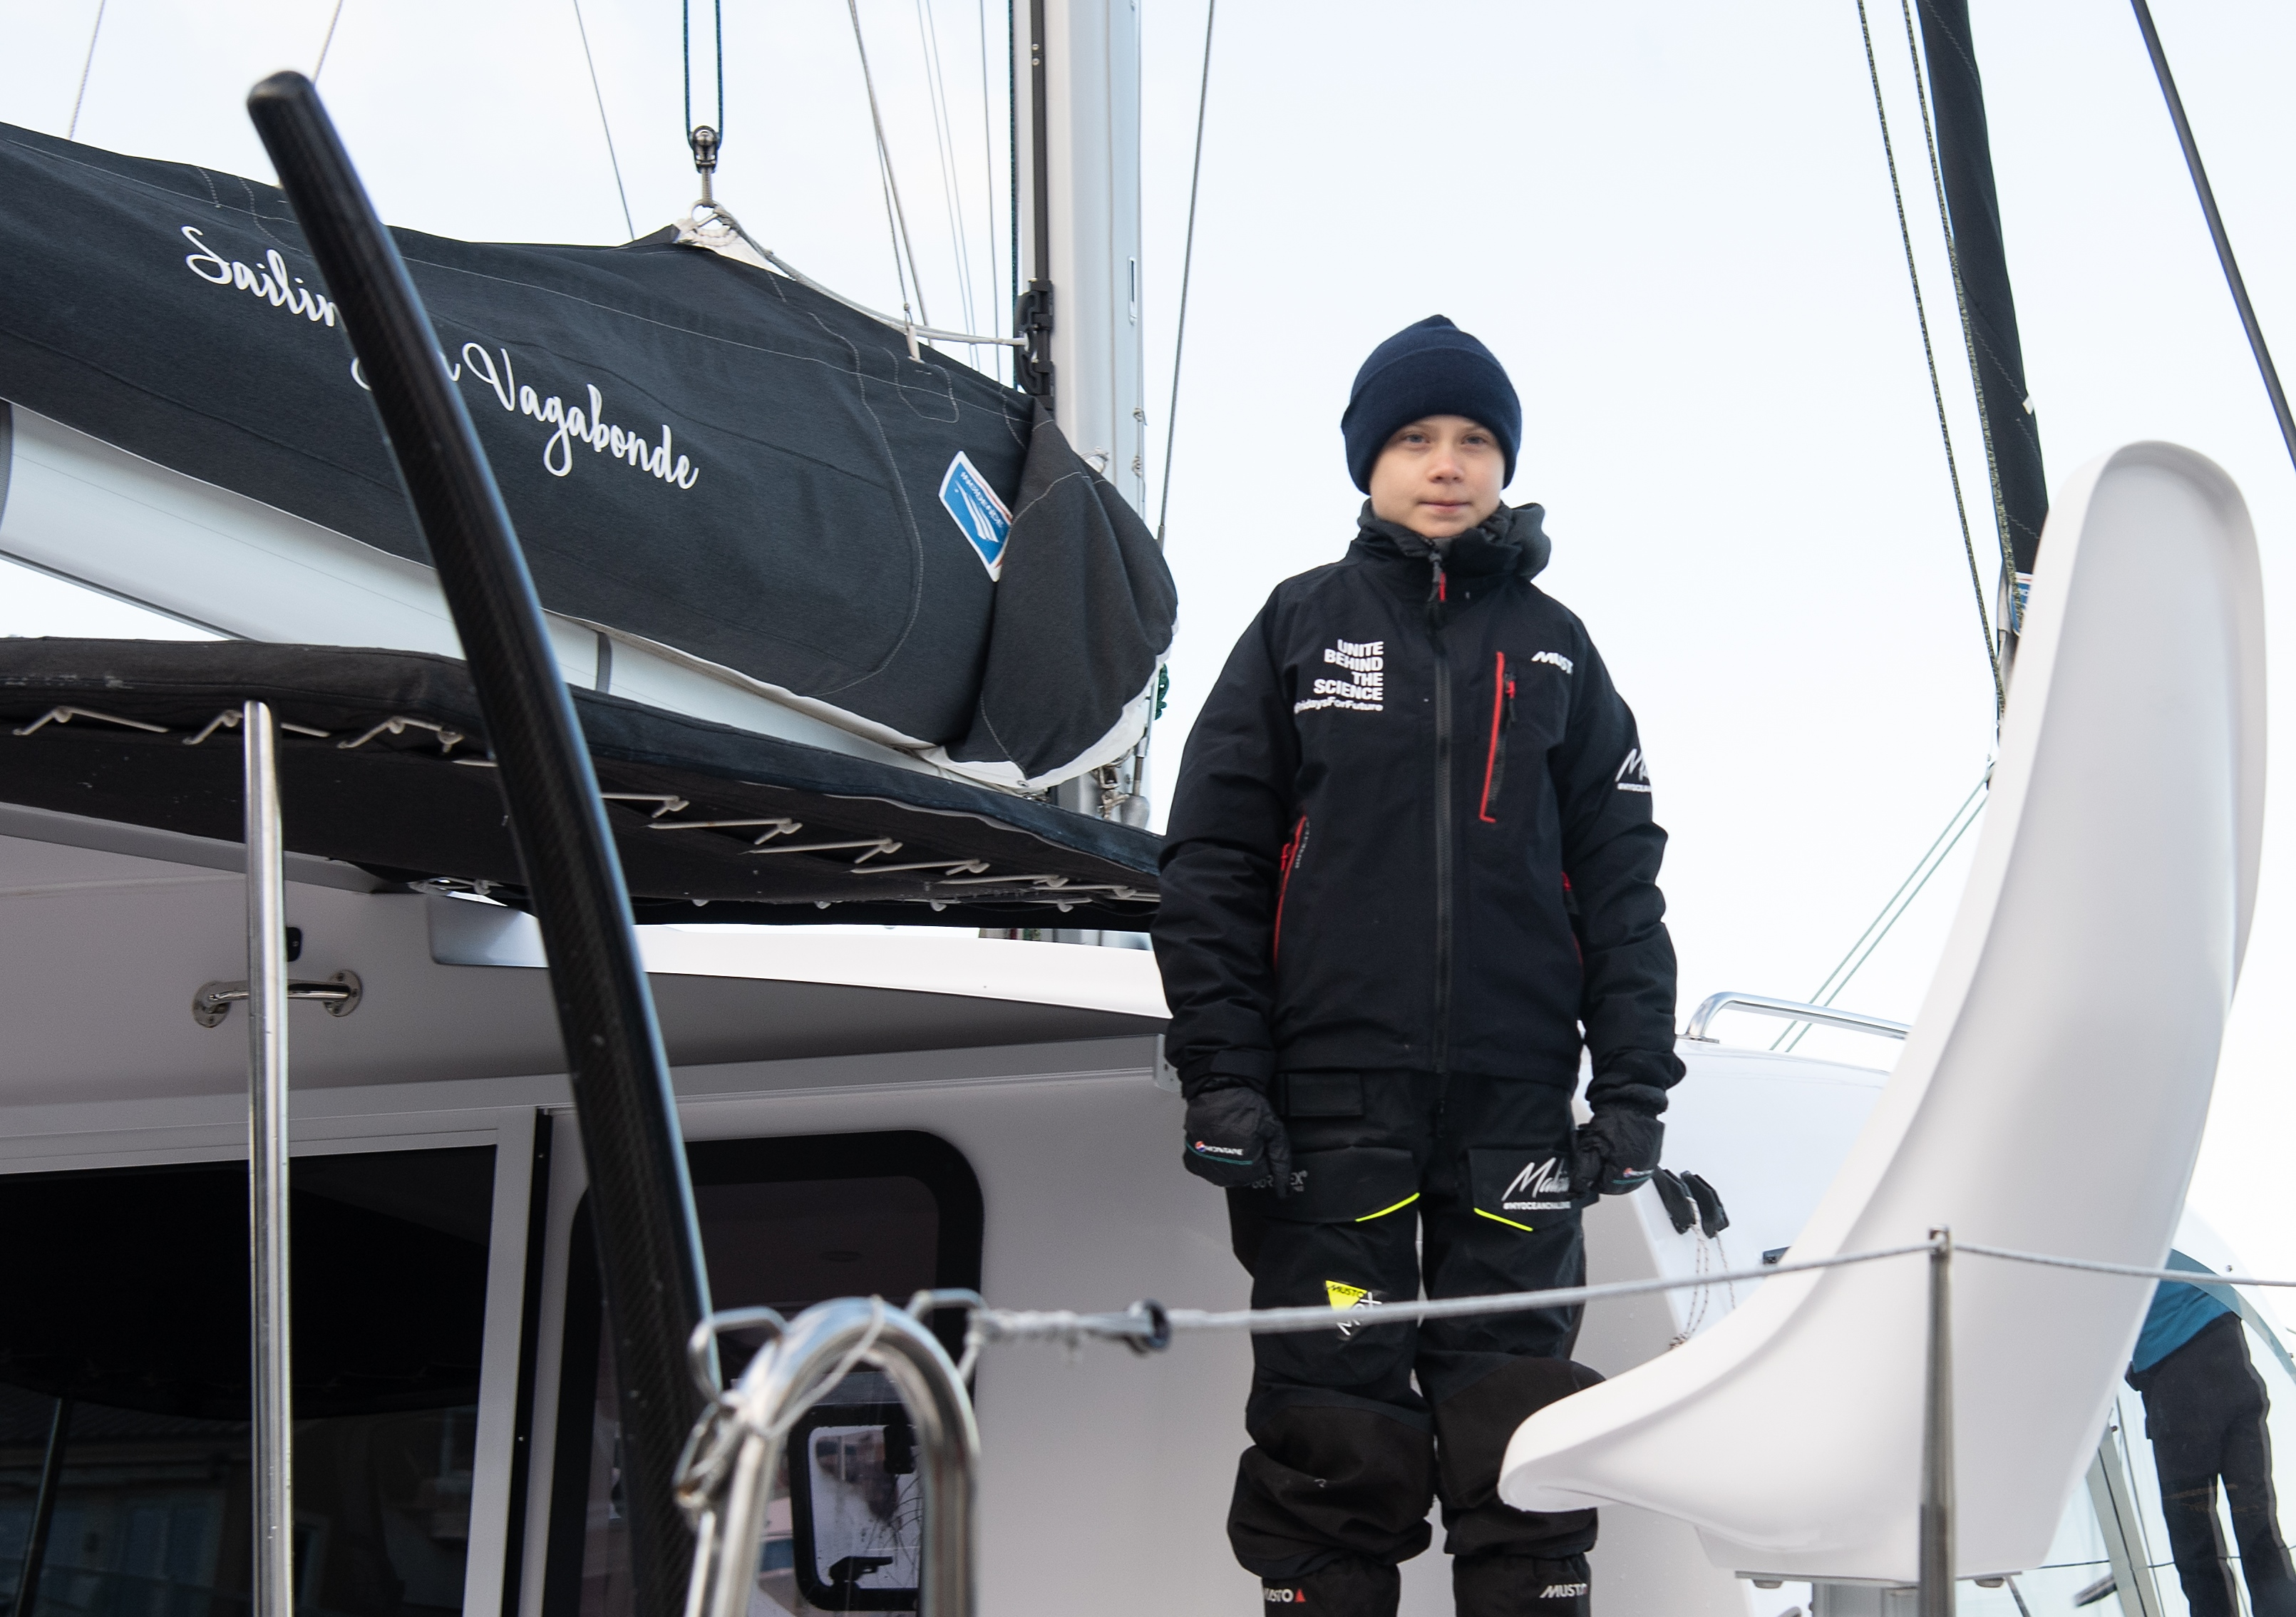 Swedish climate activist Greta Thunberg stands aboard the catamaran La Vagabonde as she sets sail to Europe in Hampton, Virginia, on November 13, 2019.